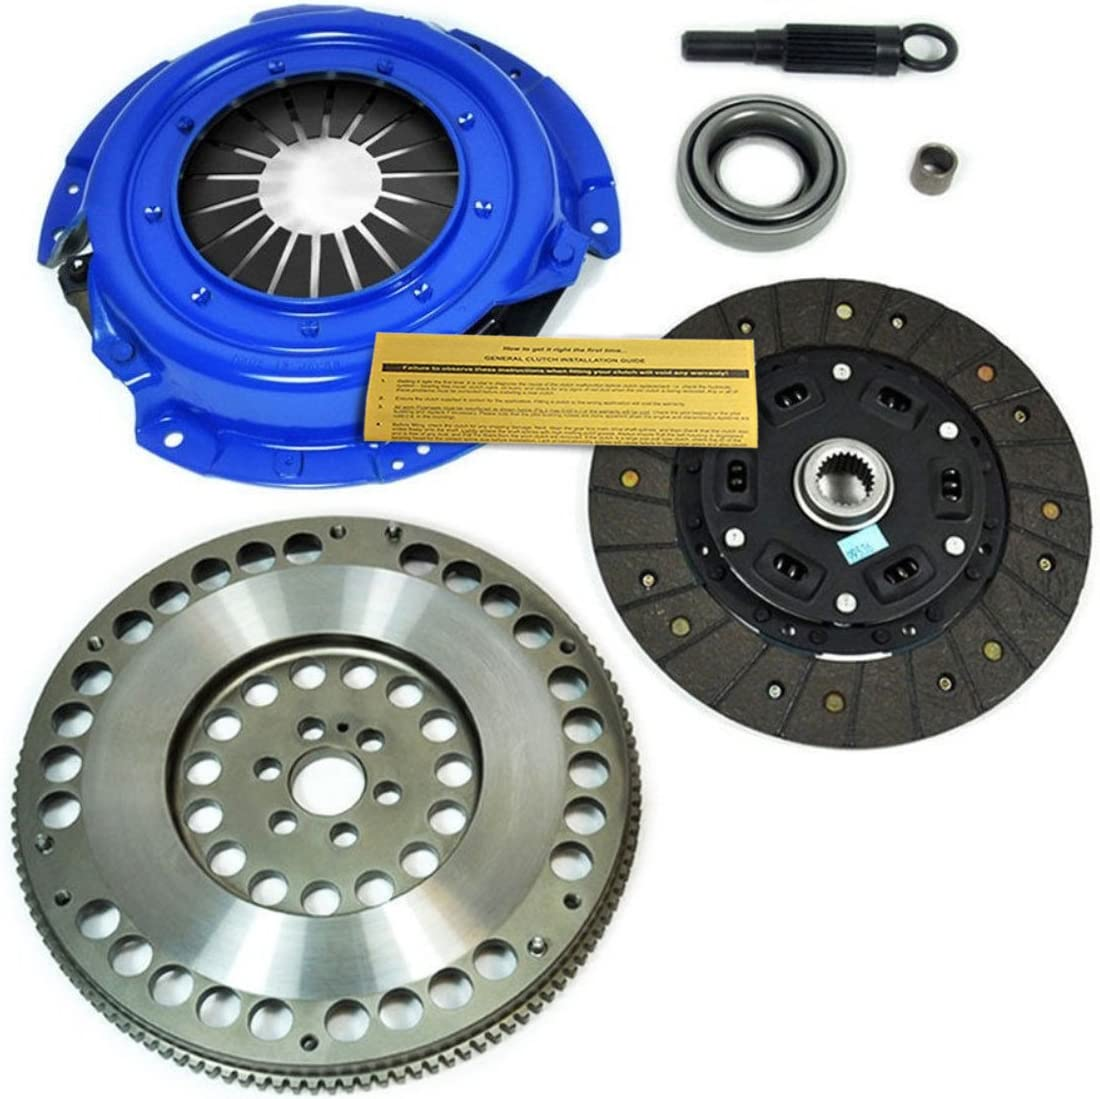 EF STAGE 1 SPORT CLUTCH KIT/& 11.5 LBS RACE LIGHT FLYWHEEL for 91-98 NISSAN 240SX